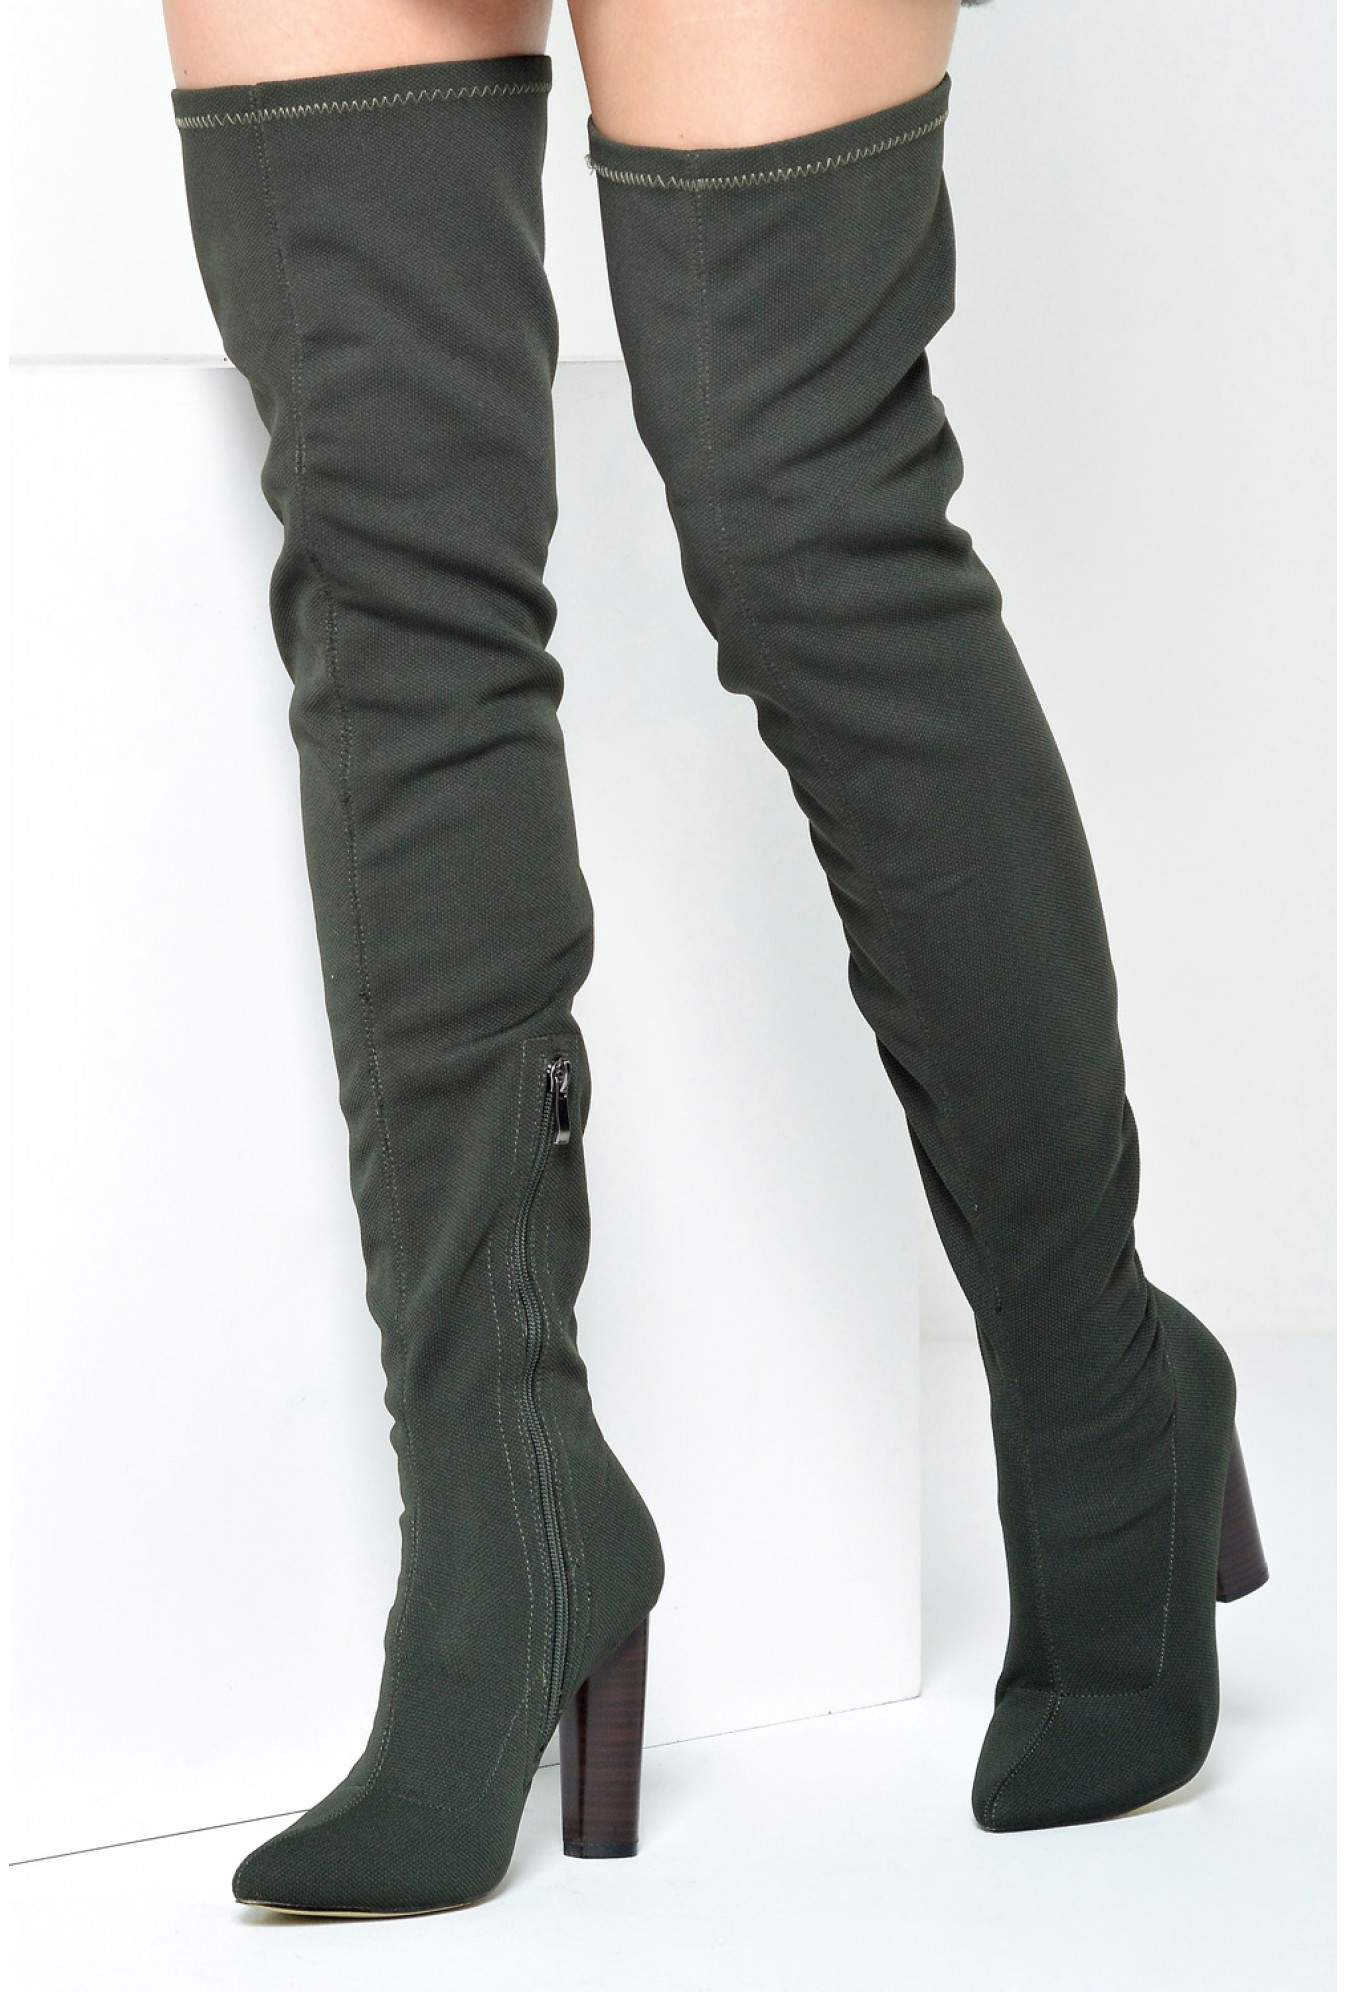 5c0afd29840 More Views. Cathy Woven Over The Knee Boots in Khaki